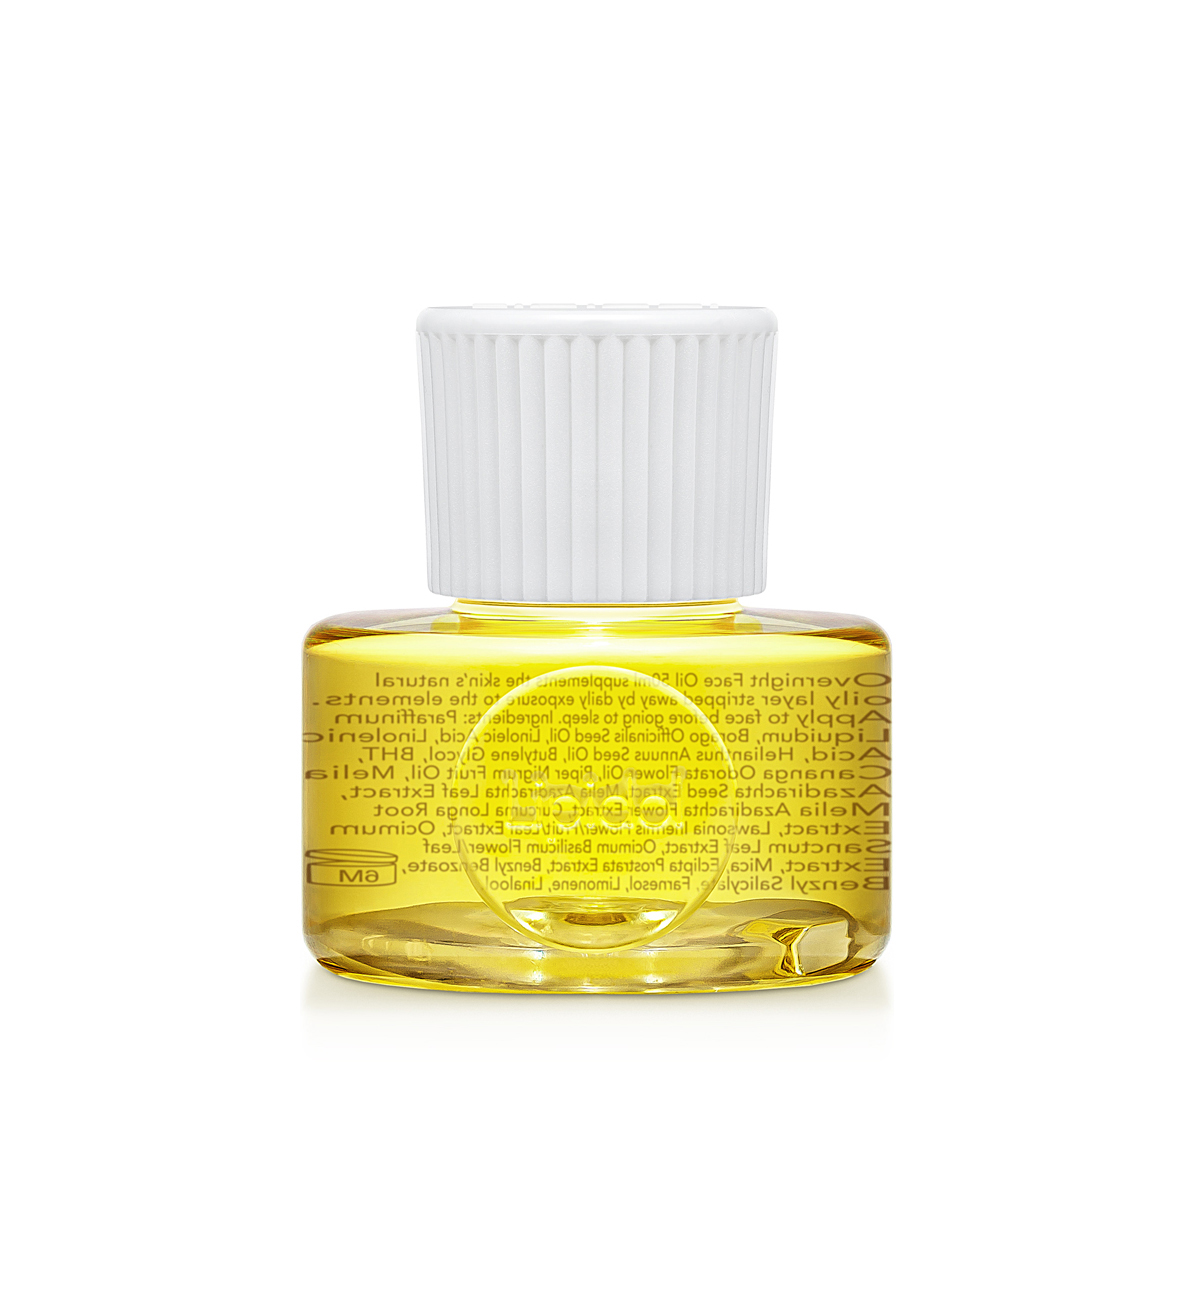 OVERNIGHT FACE OIL   50ml  Supplements the skin's natural oily layer stripped away by daily exposure to the elements.  Apply to face before going to sleep.  Ylang-Ylang and Black Pepper essential oils fragrance.  Suitable for sensitive skin, non-acnegenic.